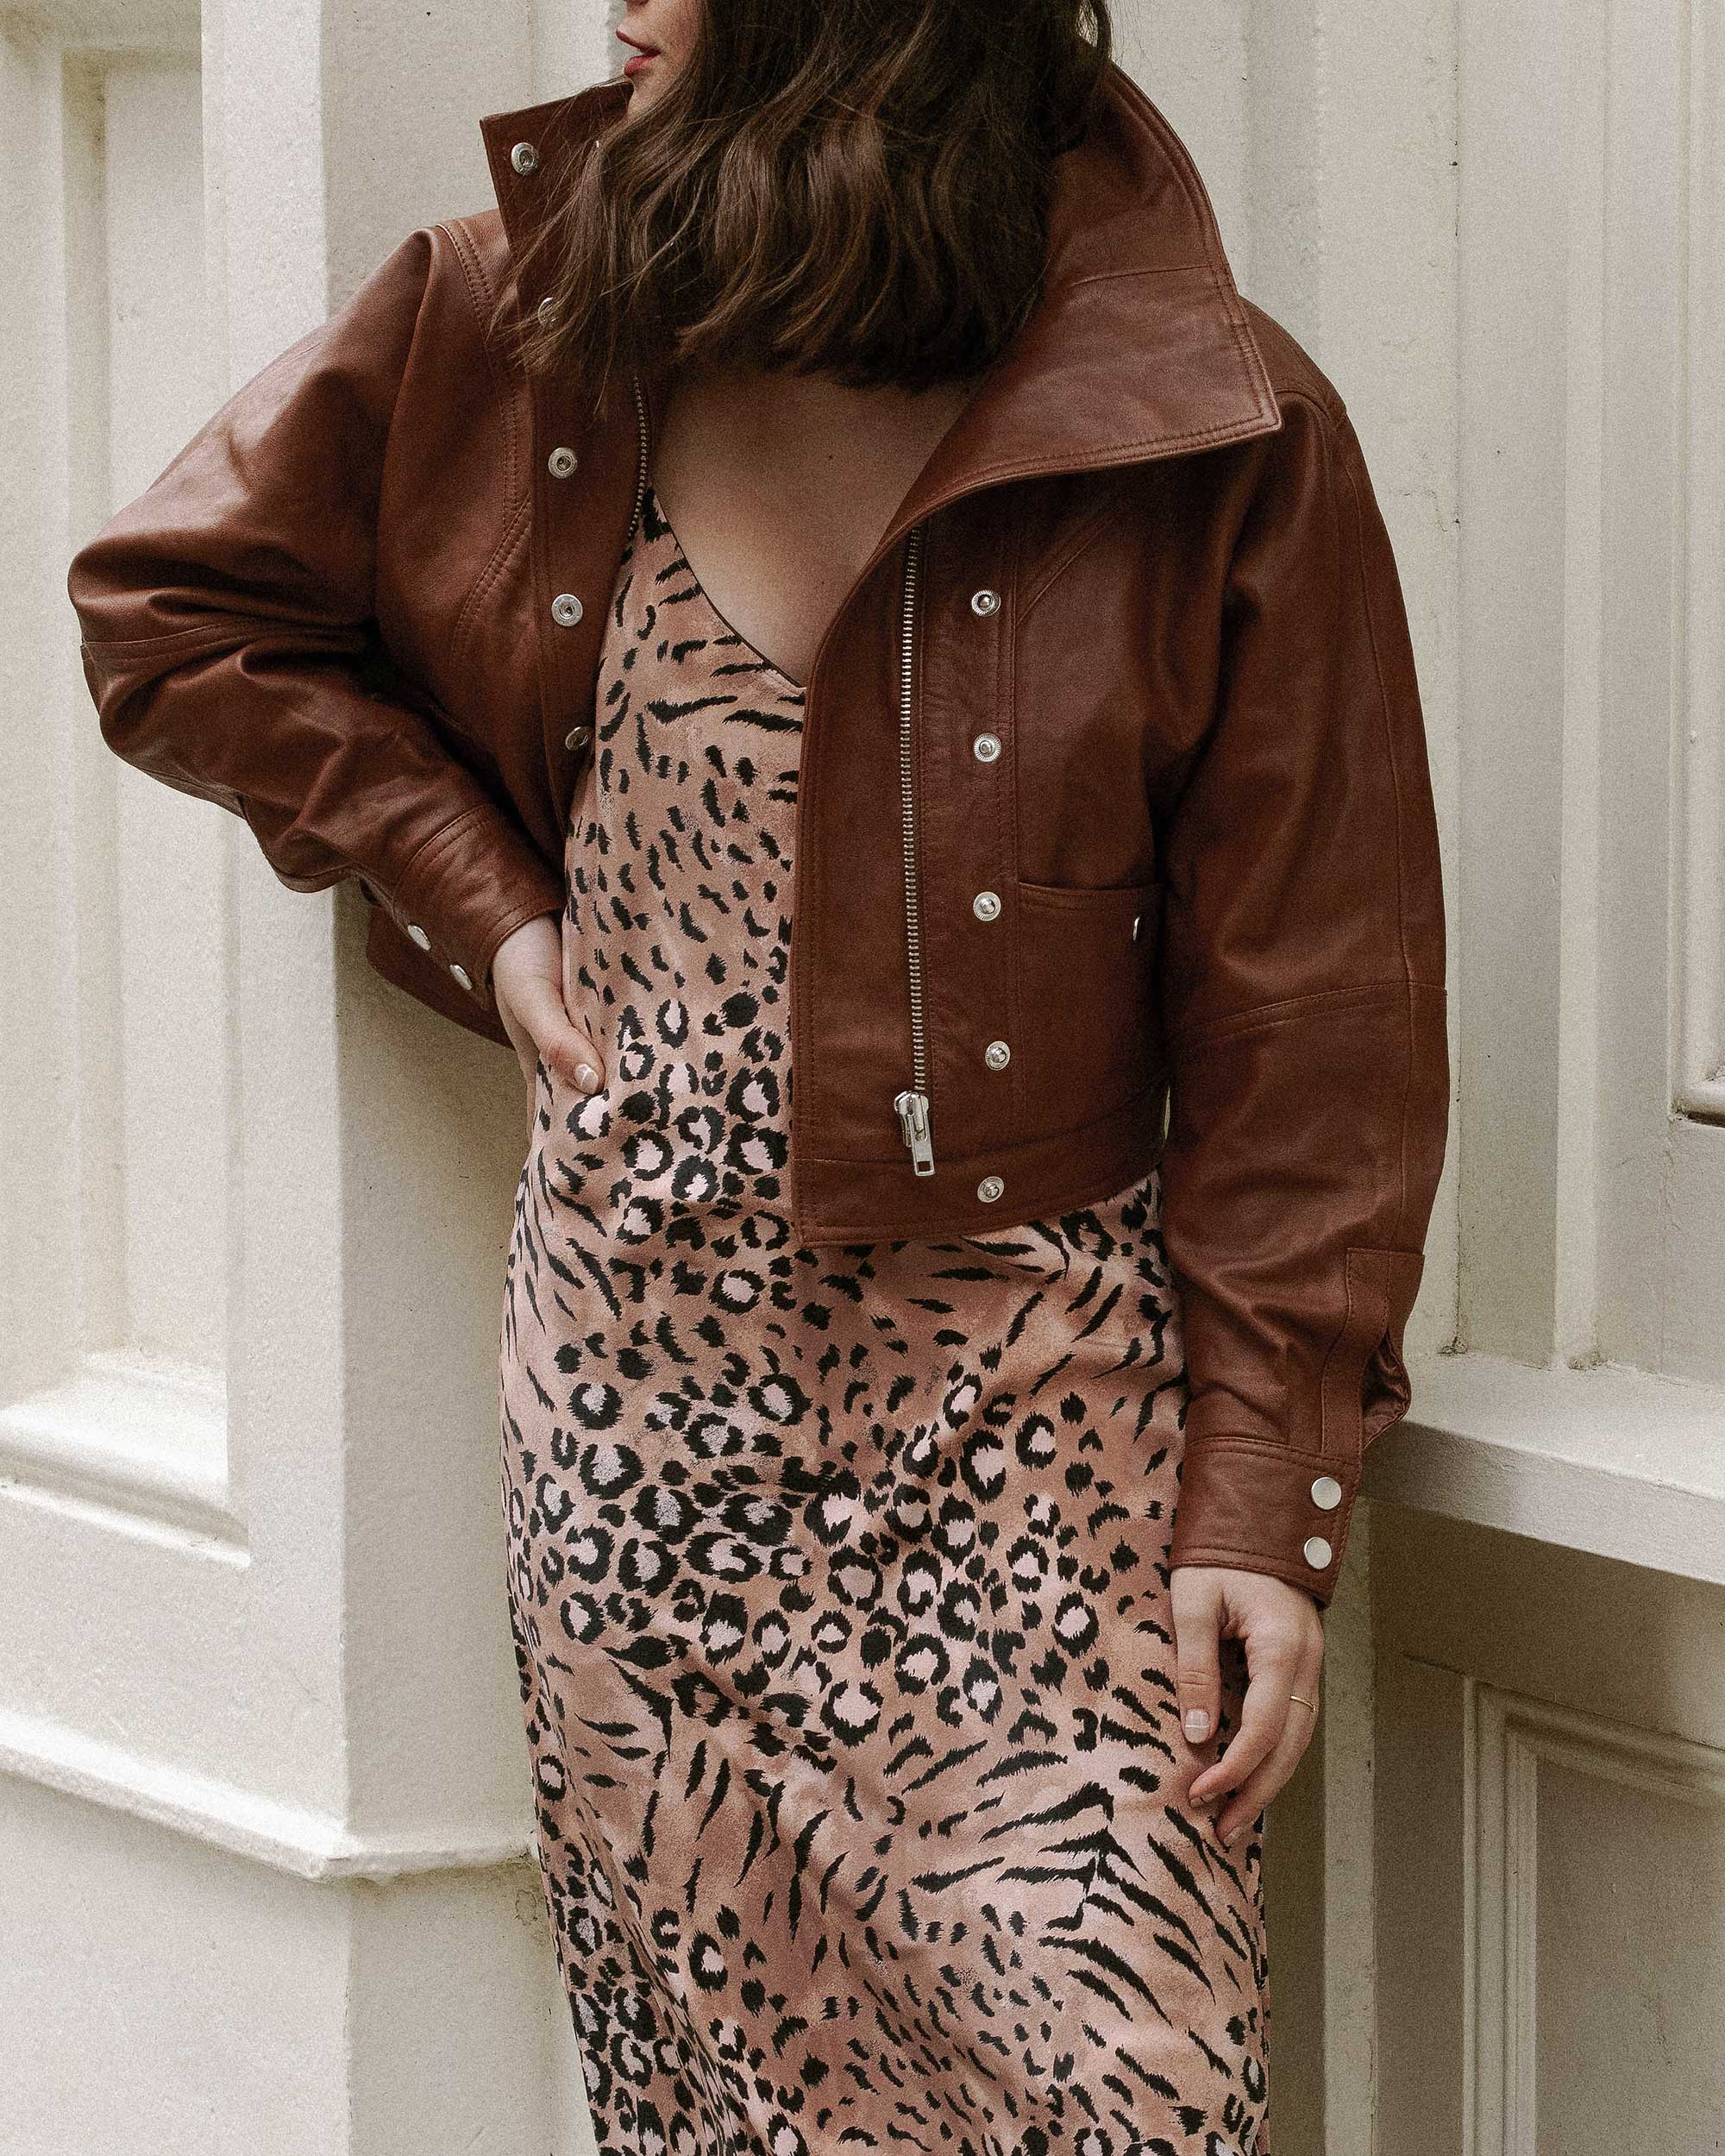 Sarah Butler of Sarah Styles Seattle wears PAIGE Cicely animal print slip dress and Revolve LPA oversized brown leather bomber jacket in Soho, New York | @sarahchristine, Seattle Blogger 0.jpg